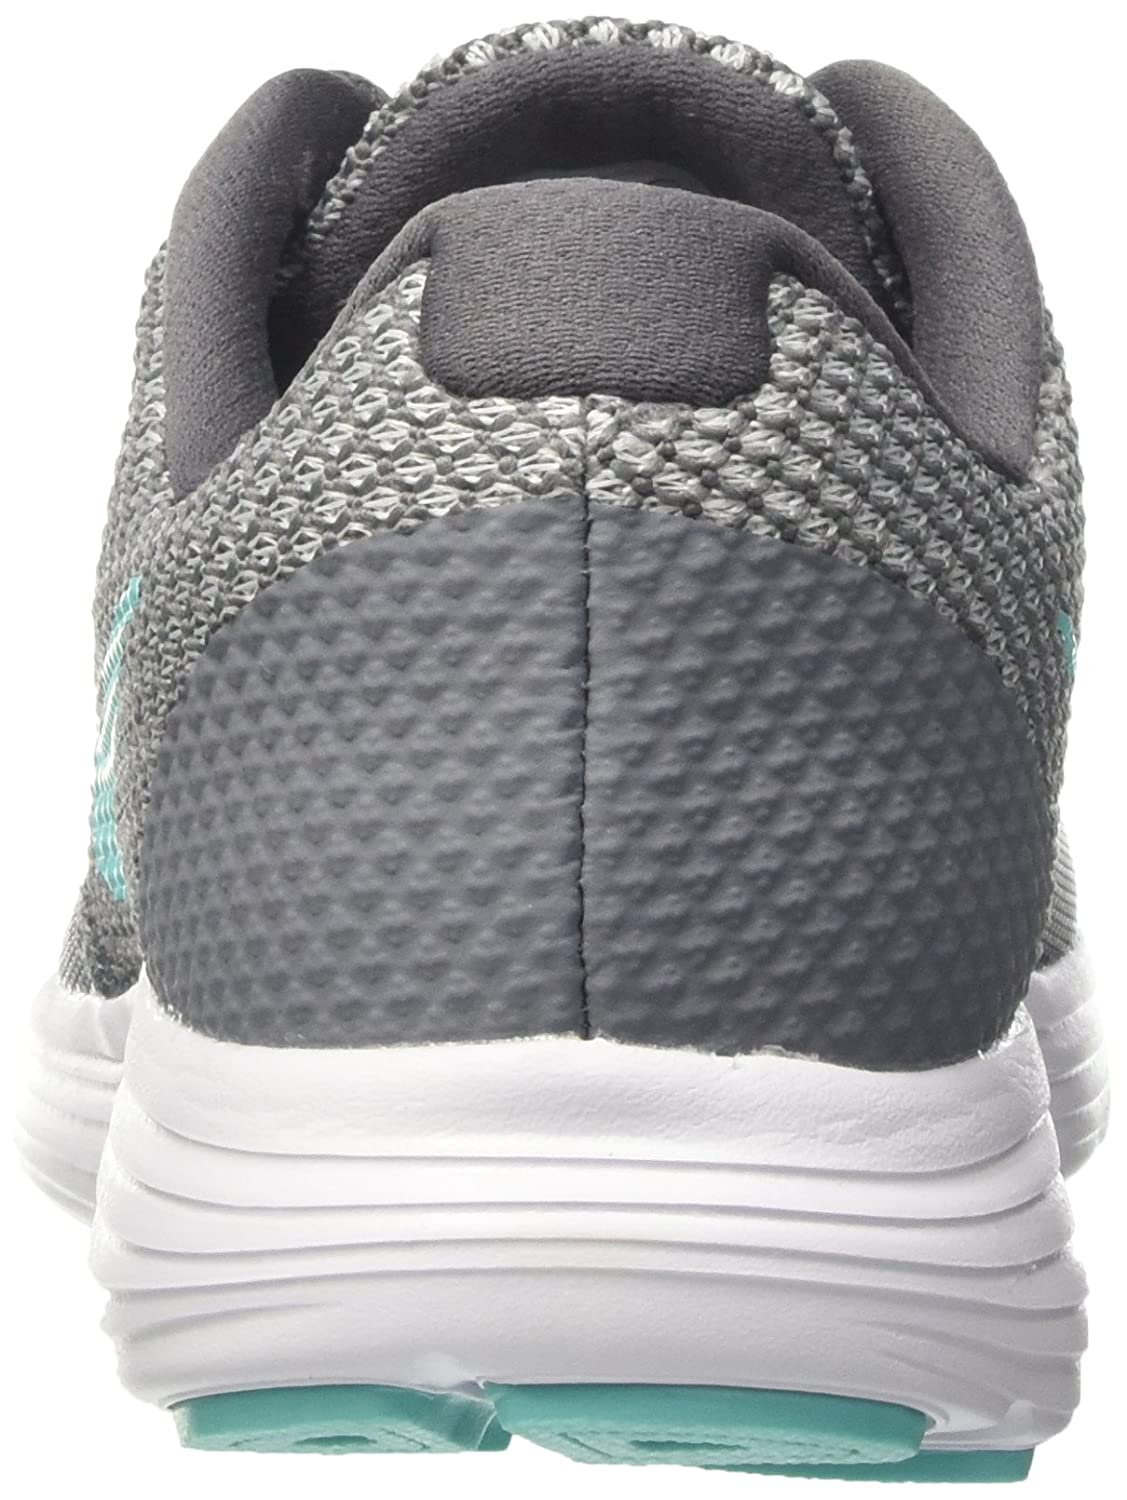 NIKE Women's US|Cool Revolution 3 Running Shoe B007NALJ5A 8.5 B(M) US|Cool Women's Grey/Aurora Green/Dark Grey/White b93d14